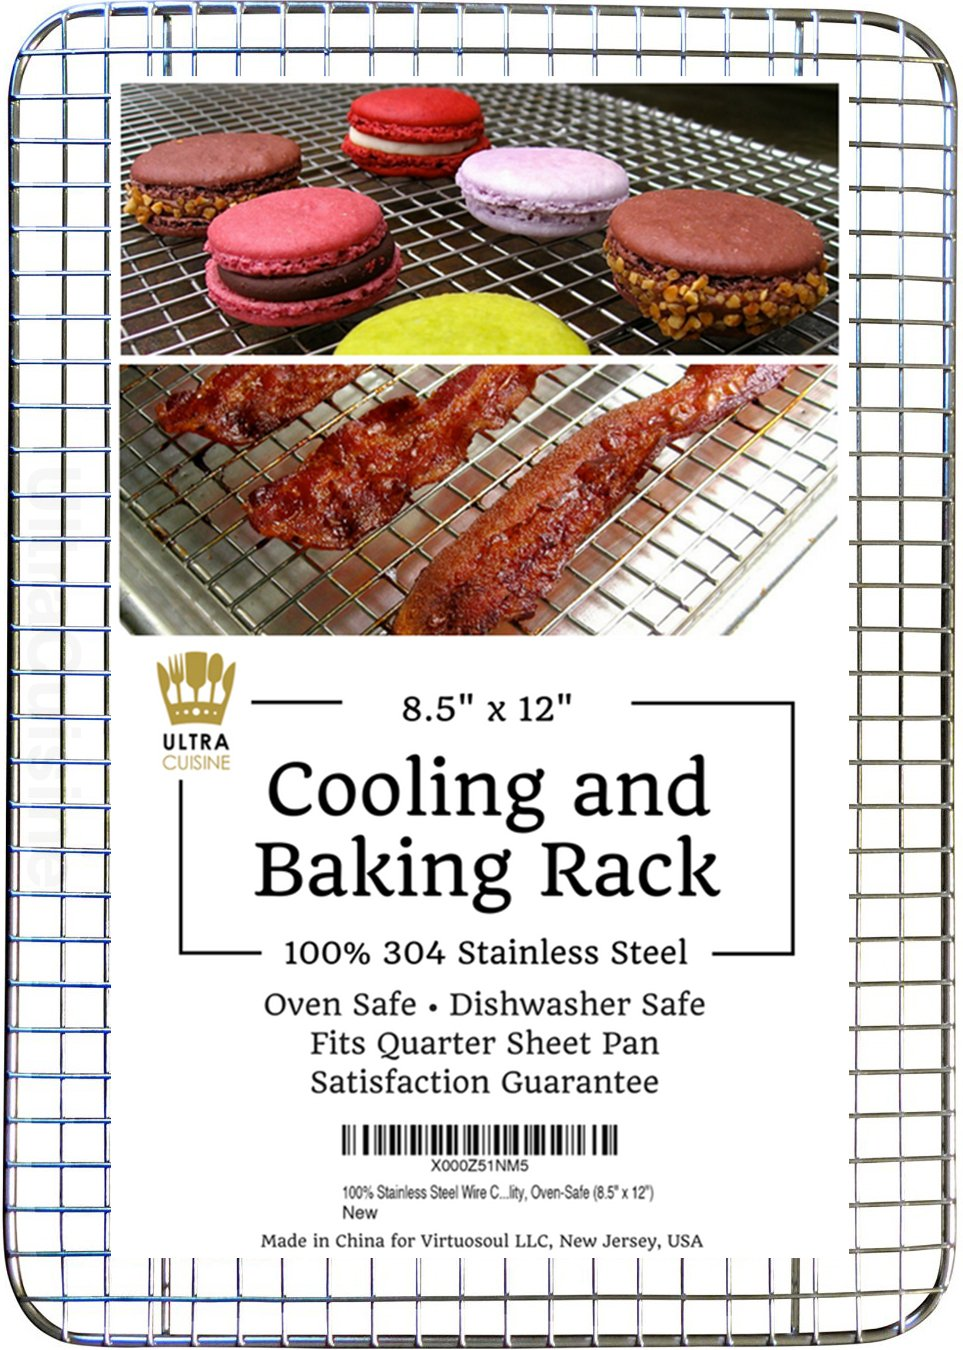 "Ultra Cuisine 100% Stainless Steel Thick Wire Cooling & Baking Rack fits Quarter Sheet Pan, Oven Safe Heavy Duty Commercial Quality for Roasting, Cooking, Grilling, Drying (8.5"" x 12"")"